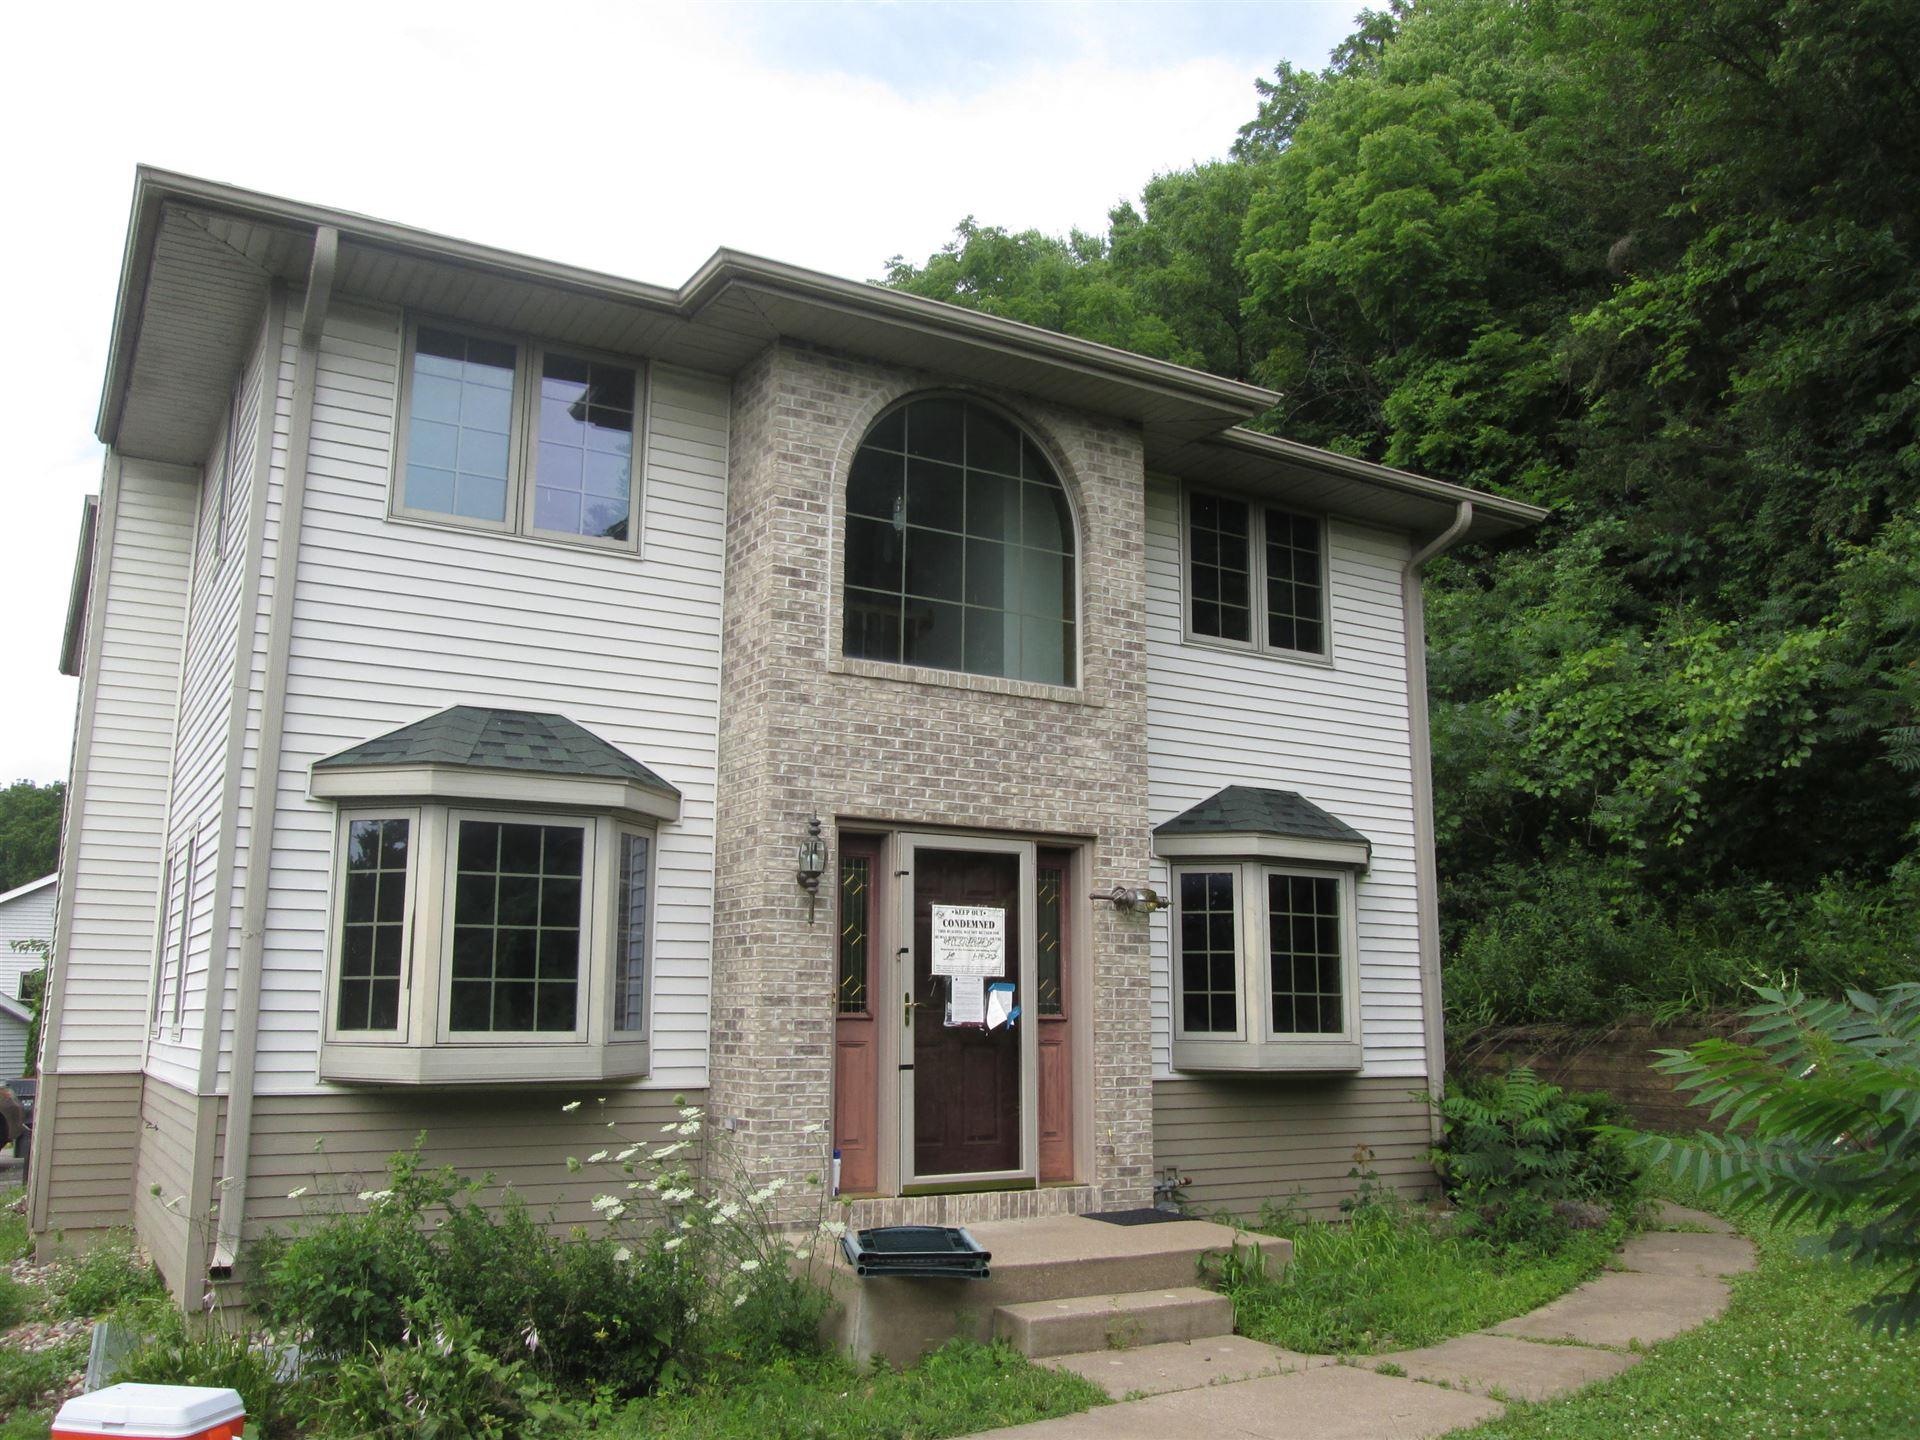 4517 Cliffside Dr, La Crosse, WI 54601 - MLS#: 1700302